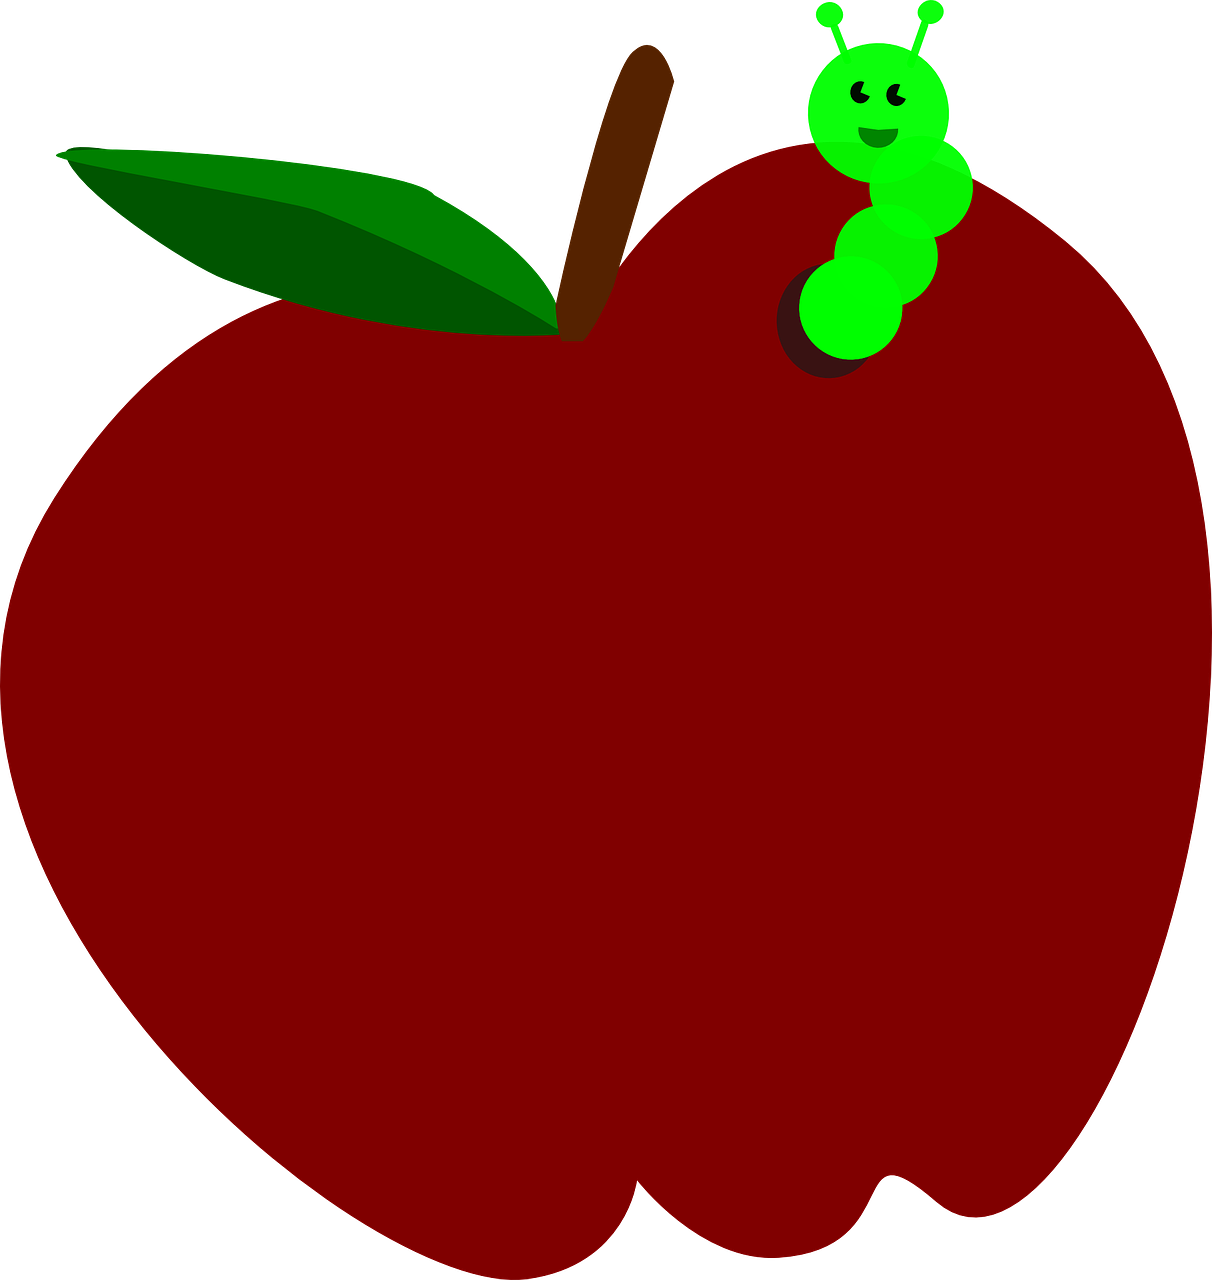 Apple cranberry clipart clip royalty free download Red Apple Fruit Worm transparent image | Red | Pinterest | Apple ... clip royalty free download